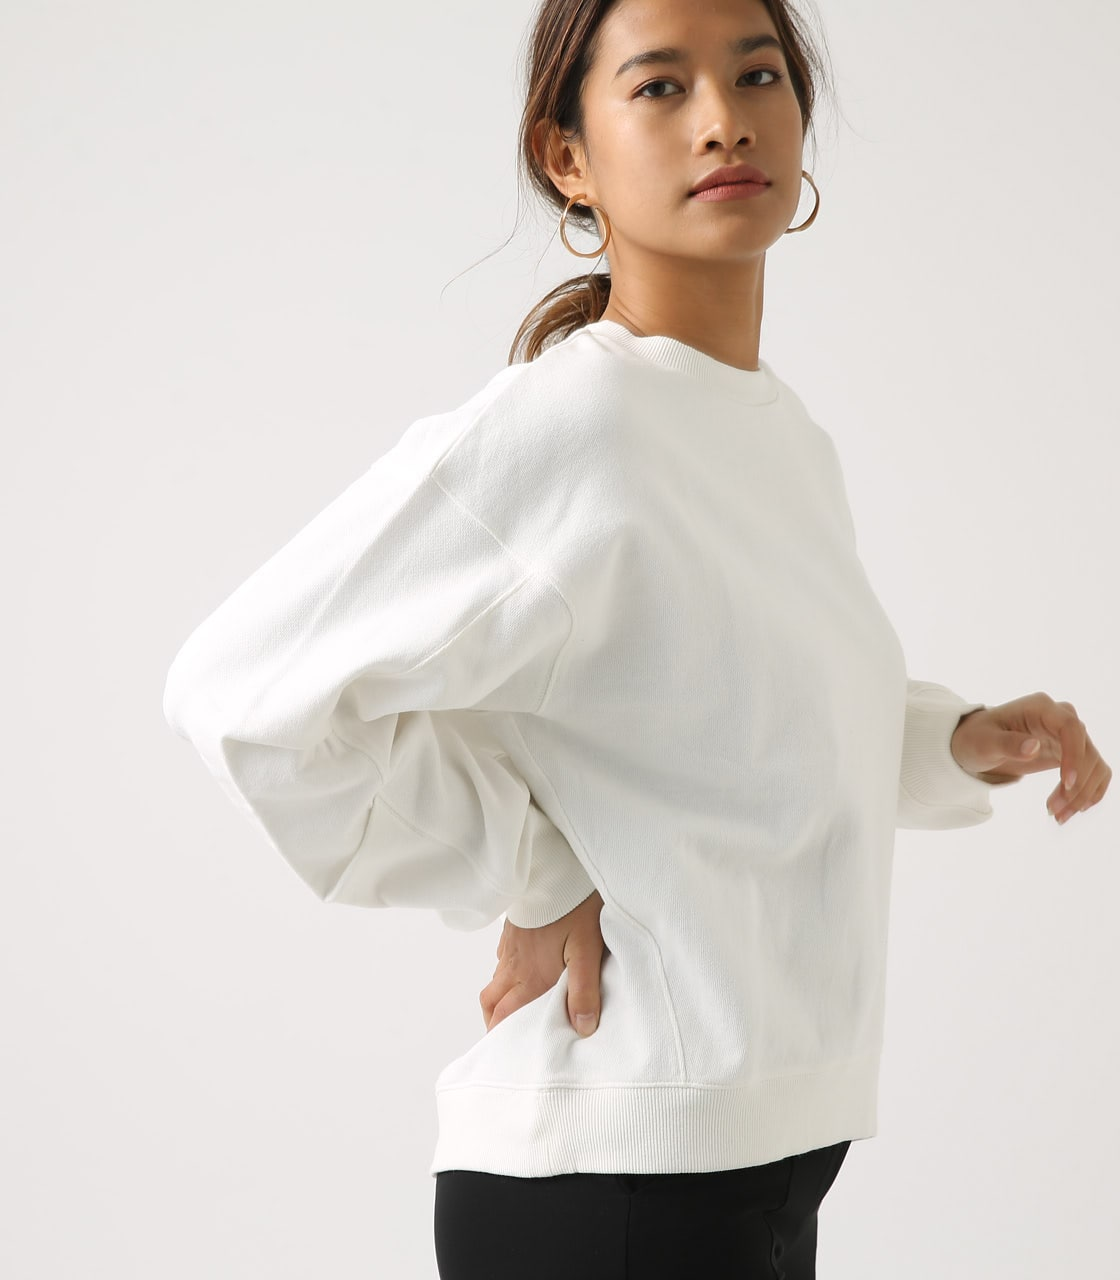 【AZUL BY MOUSSY】SLEEVE TUCK SWEAT TOPS 詳細画像 O/WHT 1